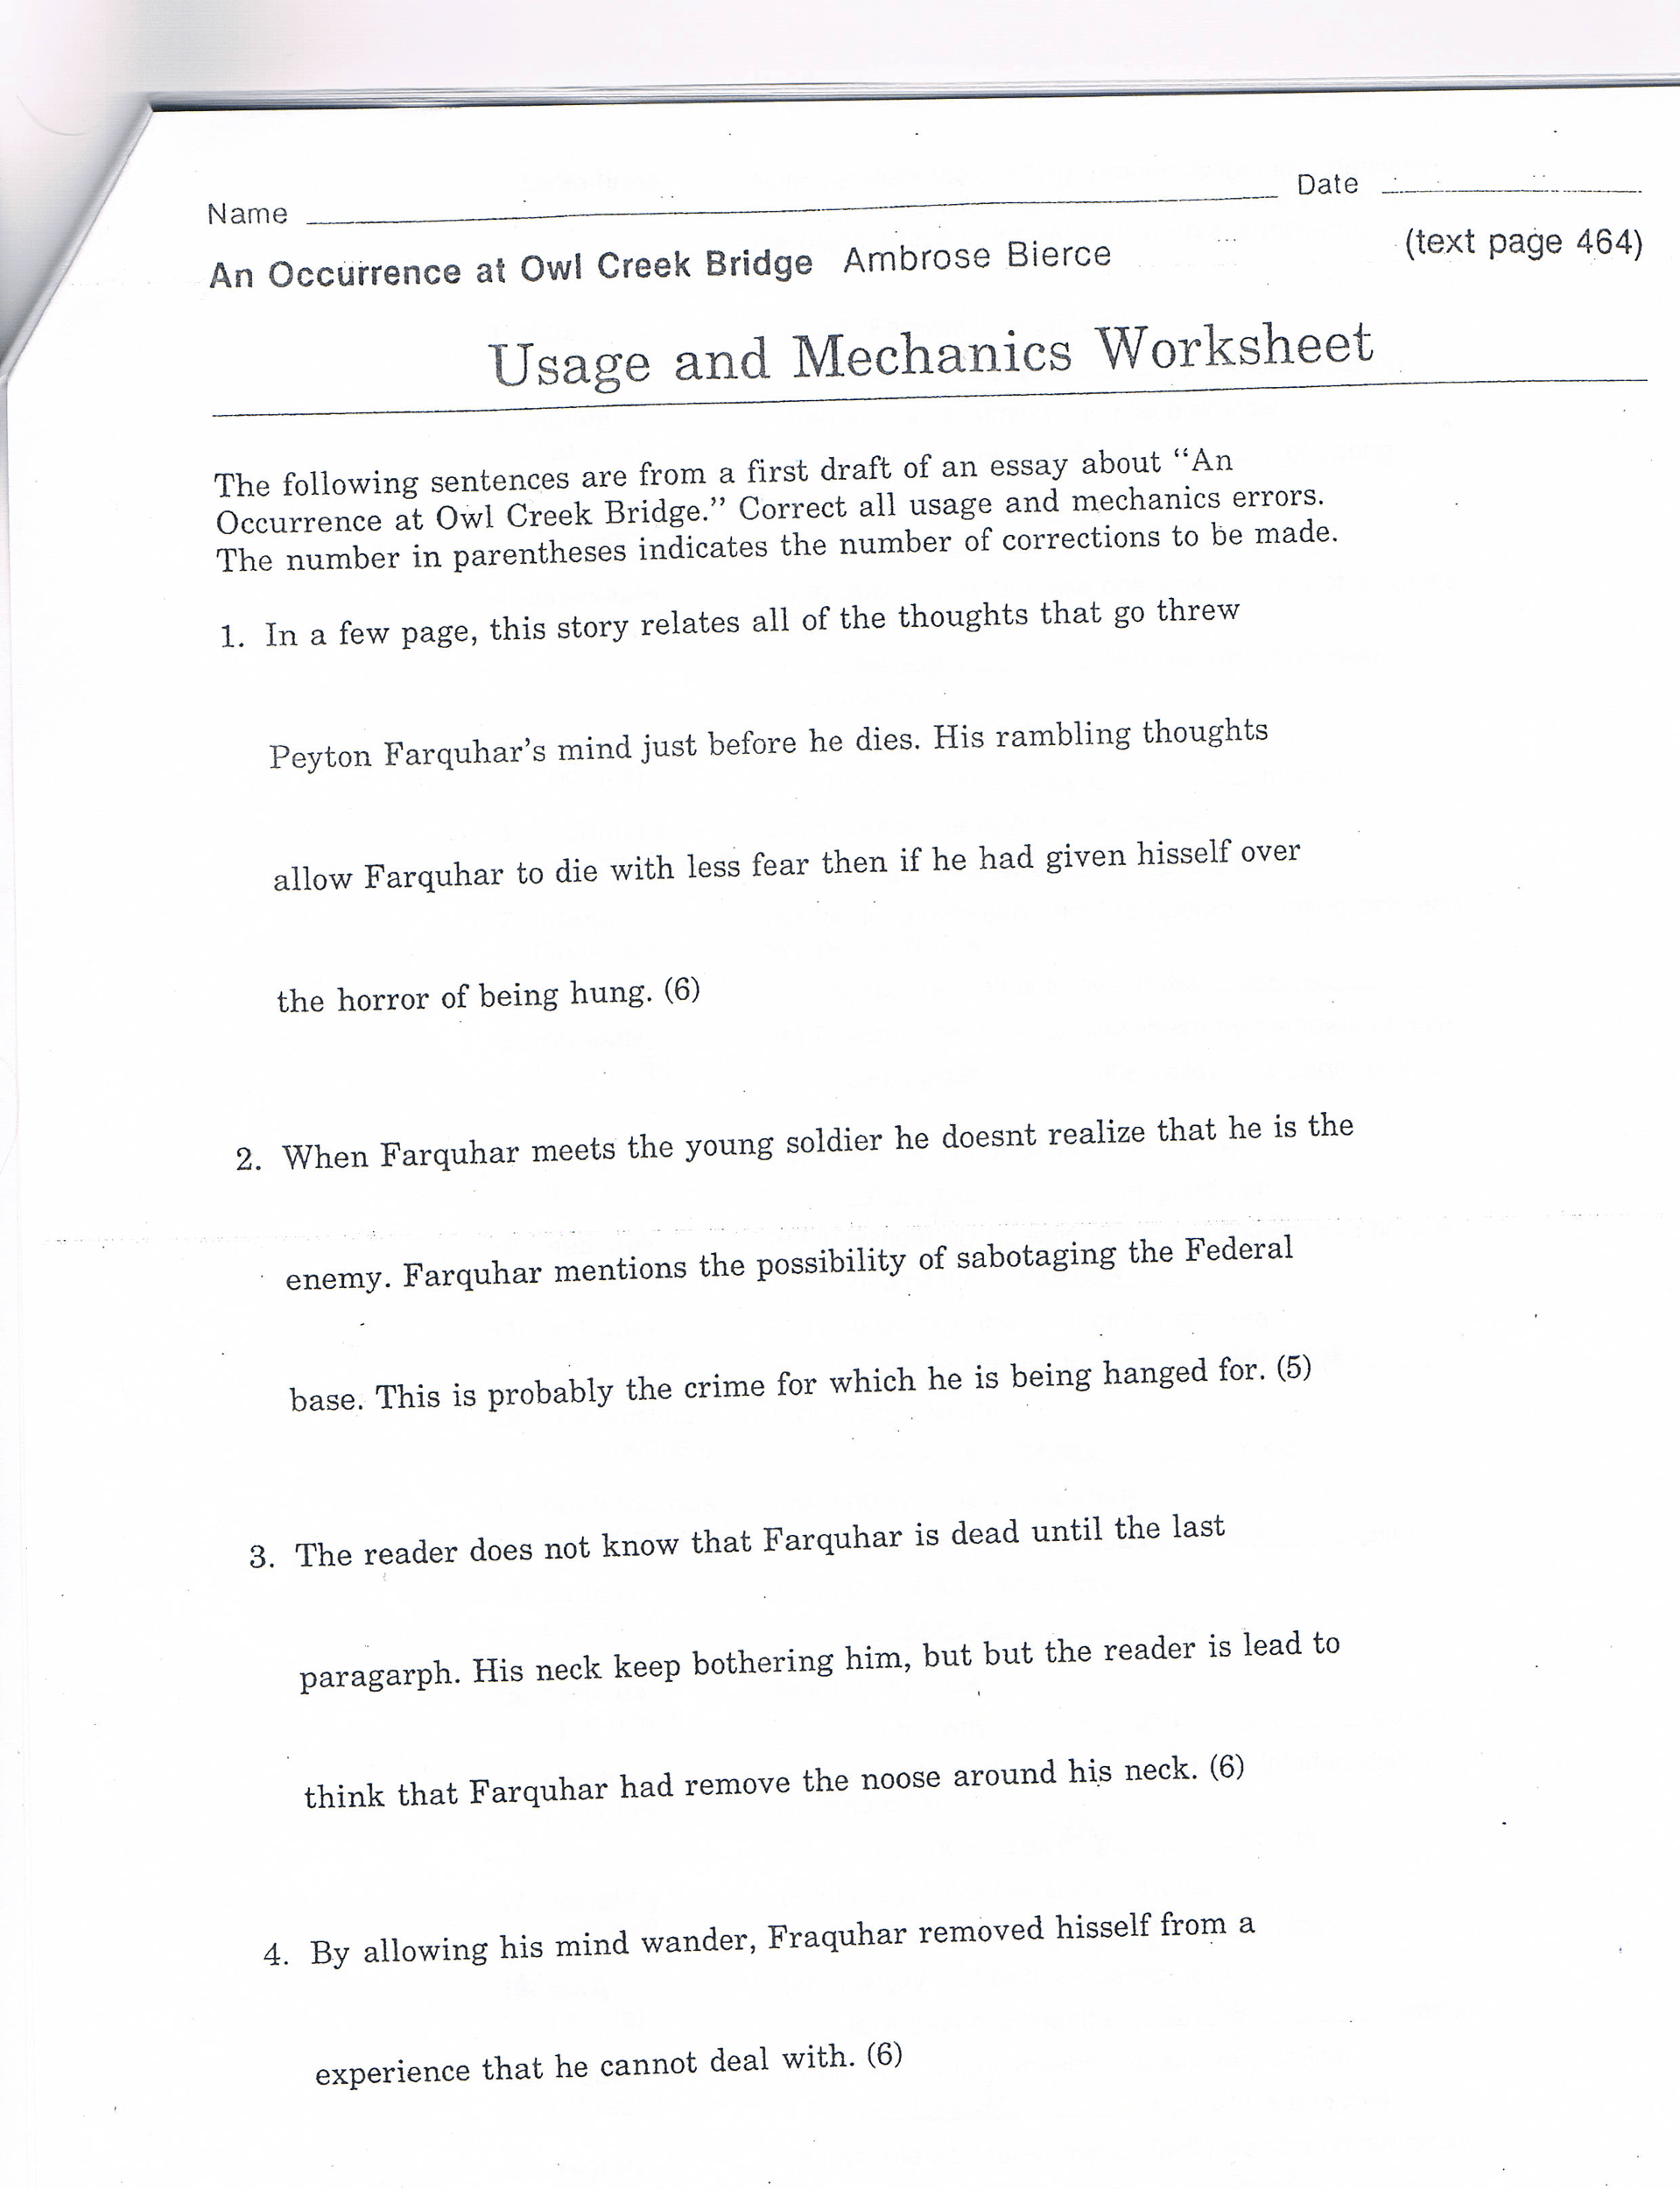 Usage And Mechanics Worksheet Answers